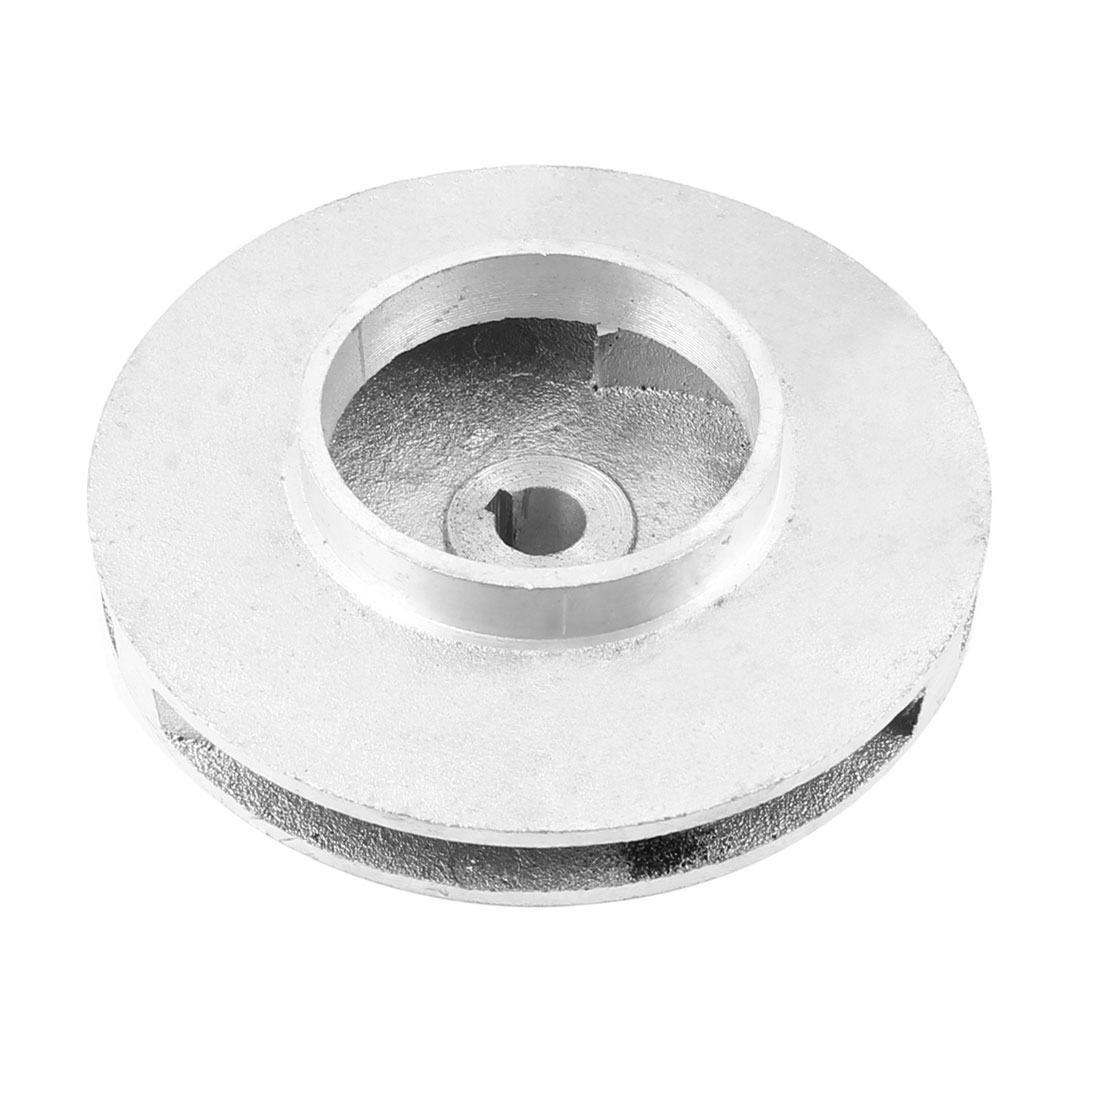 11.7cm Diameter Precision Impeller Casting Part for Water Pump